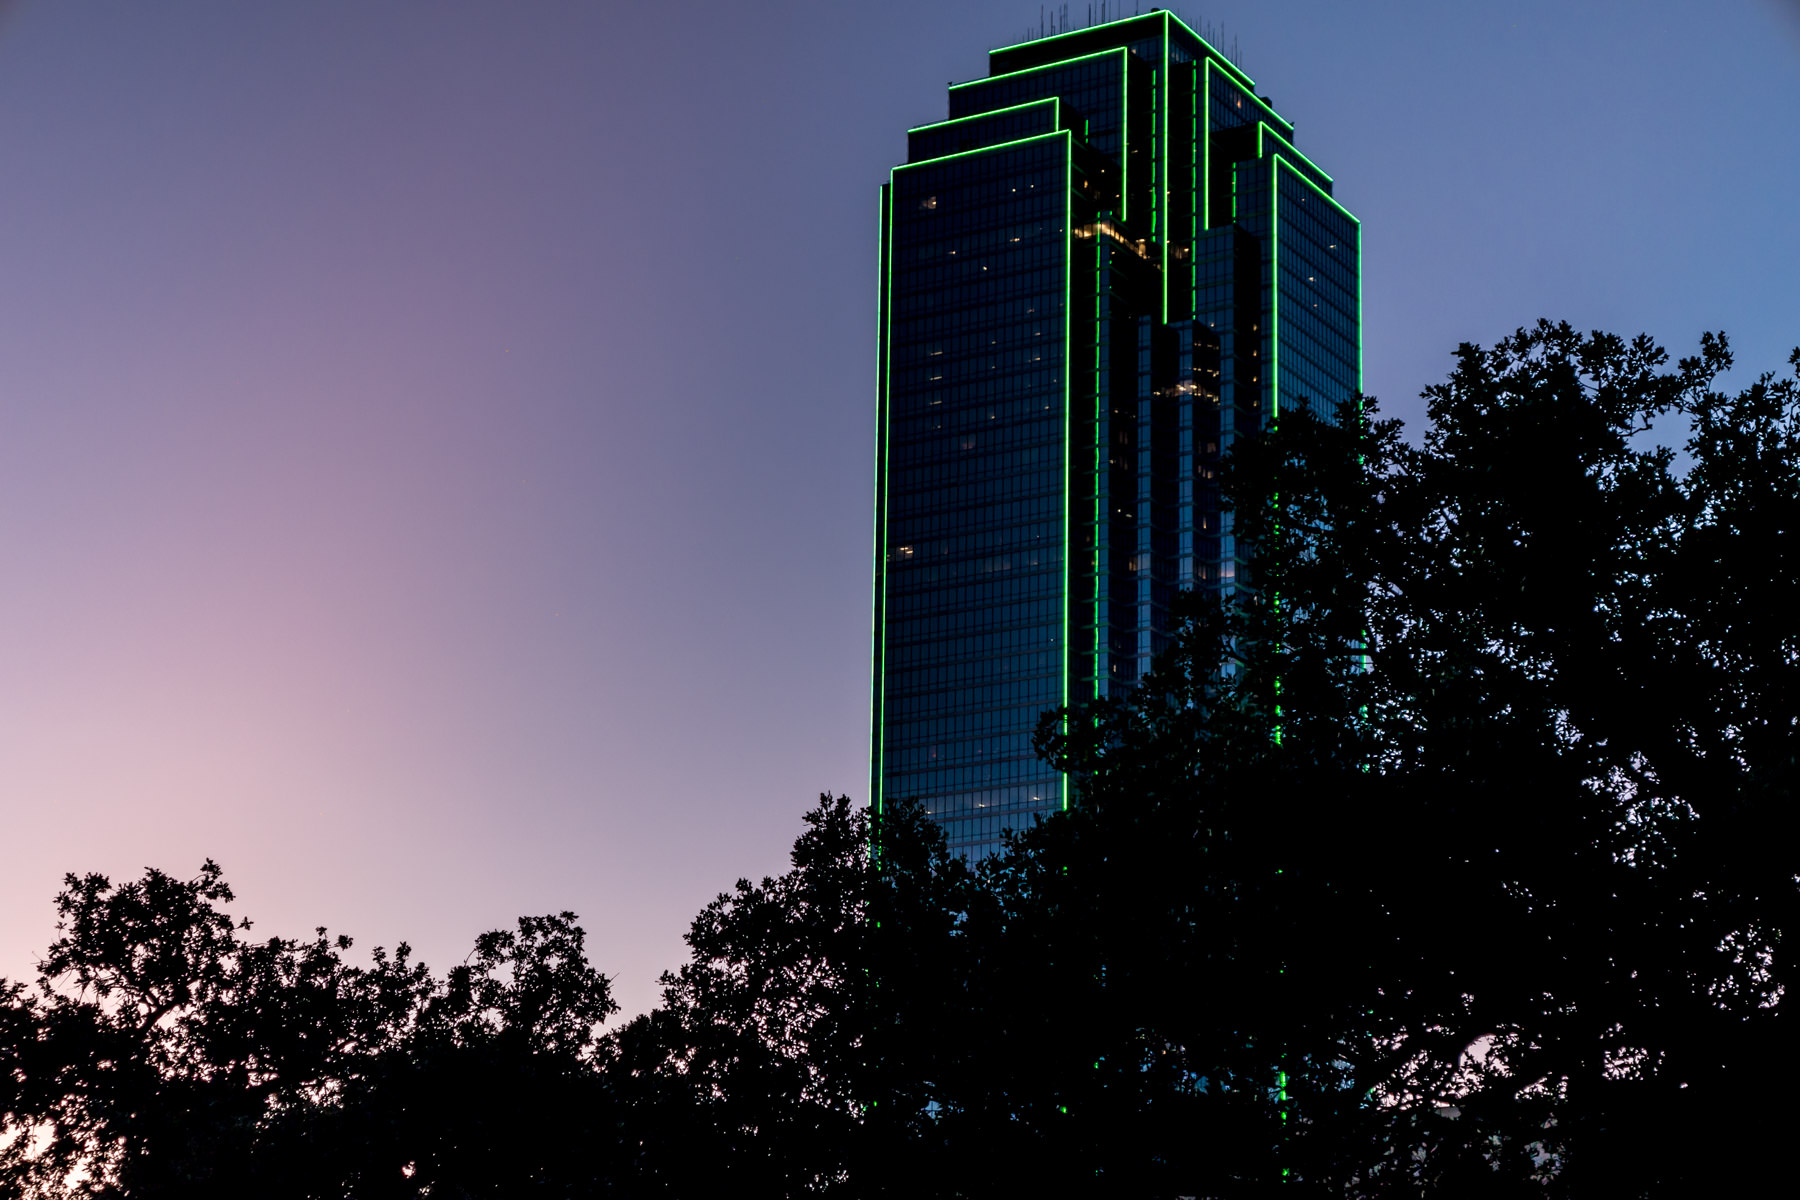 Dallas' Bank of America Plaza rises into the sky as the sun sets on North Texas.